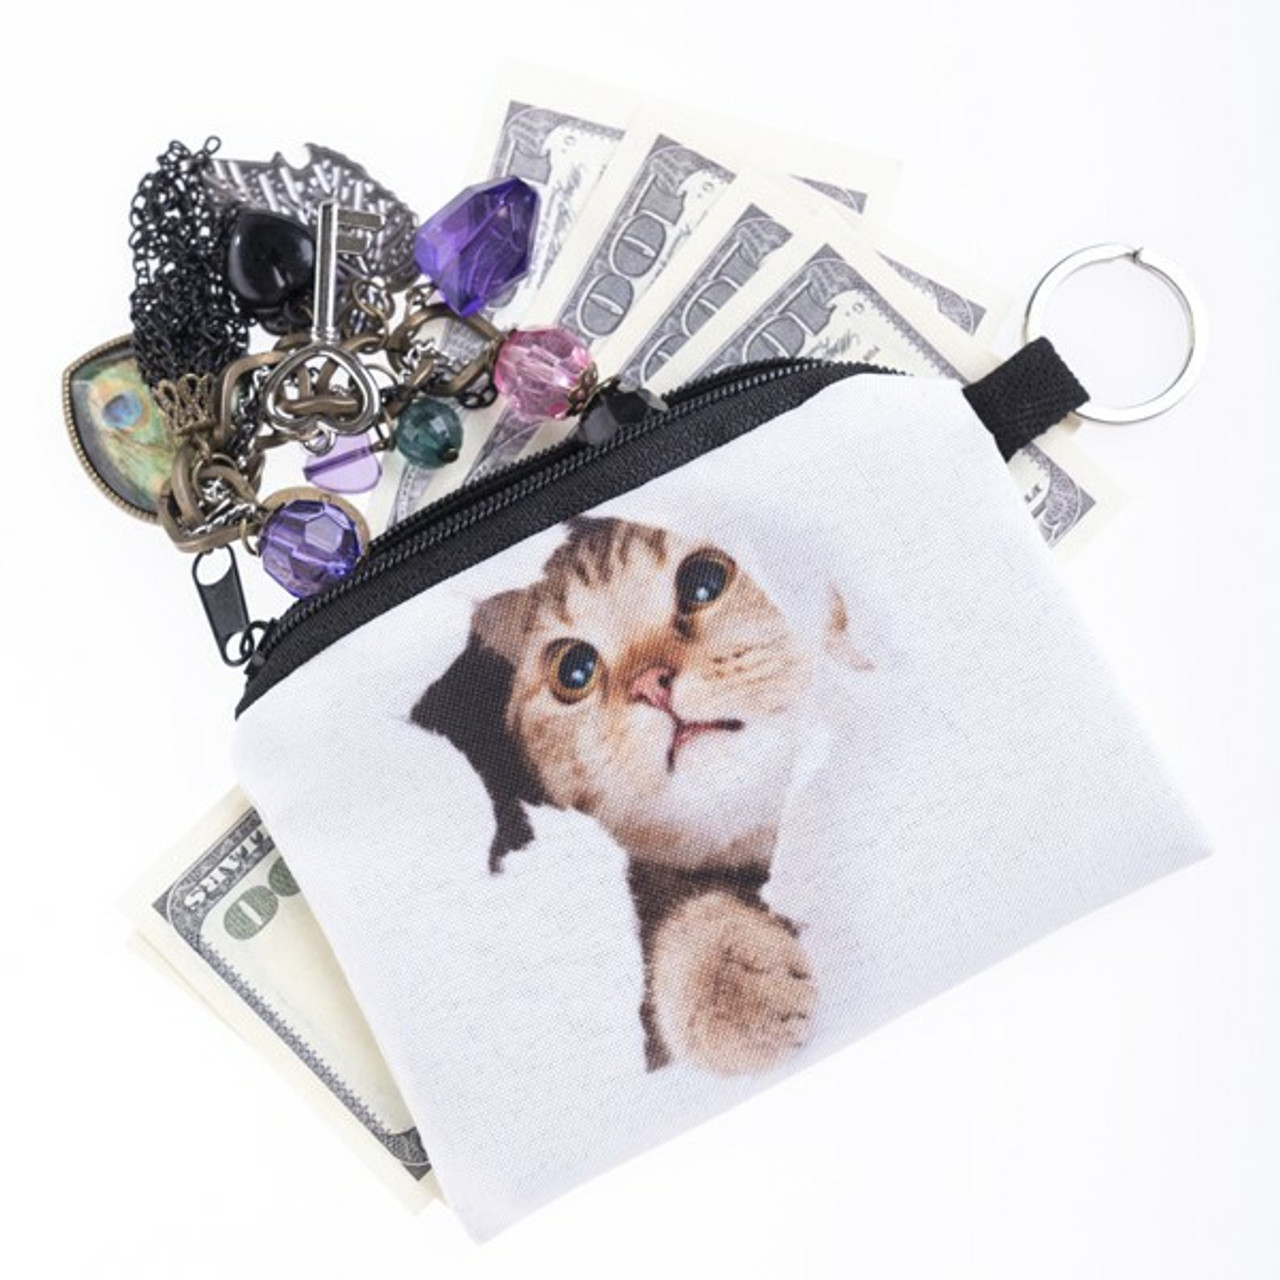 Unzipped Kitty Cat Surprise  Graphic Print Coin Purse - 18 Styles shown with cash and jewelry sticking out